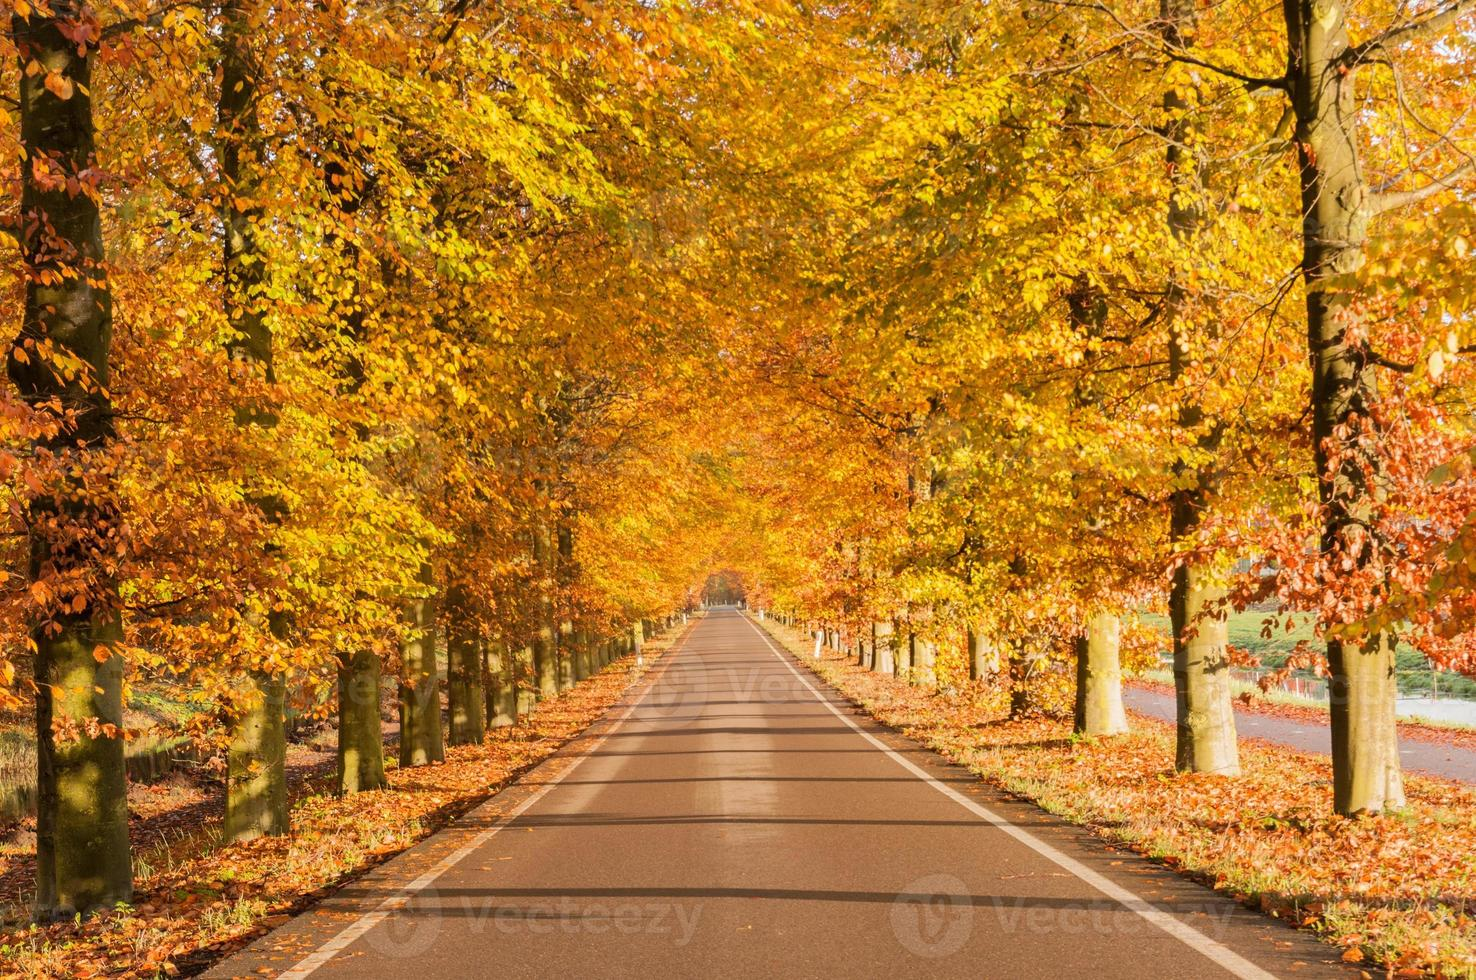 Autumn in the Netherlands photo